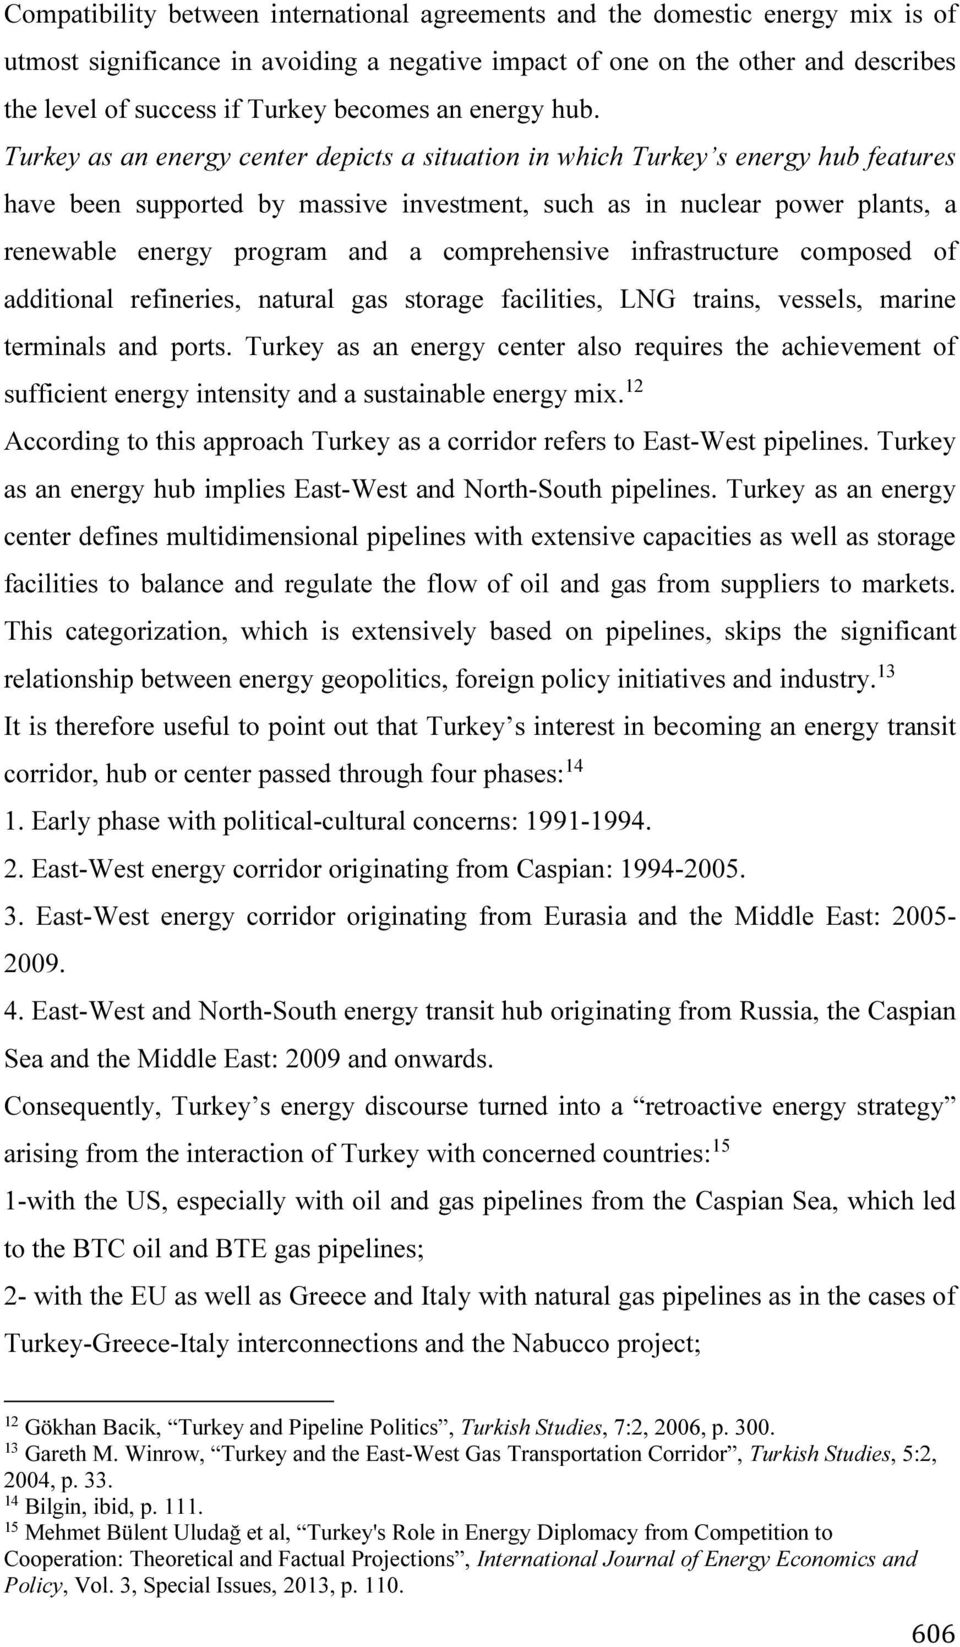 Turkey as an energy center depicts a situation in which Turkey s energy hub features have been supported by massive investment, such as in nuclear power plants, a renewable energy program and a